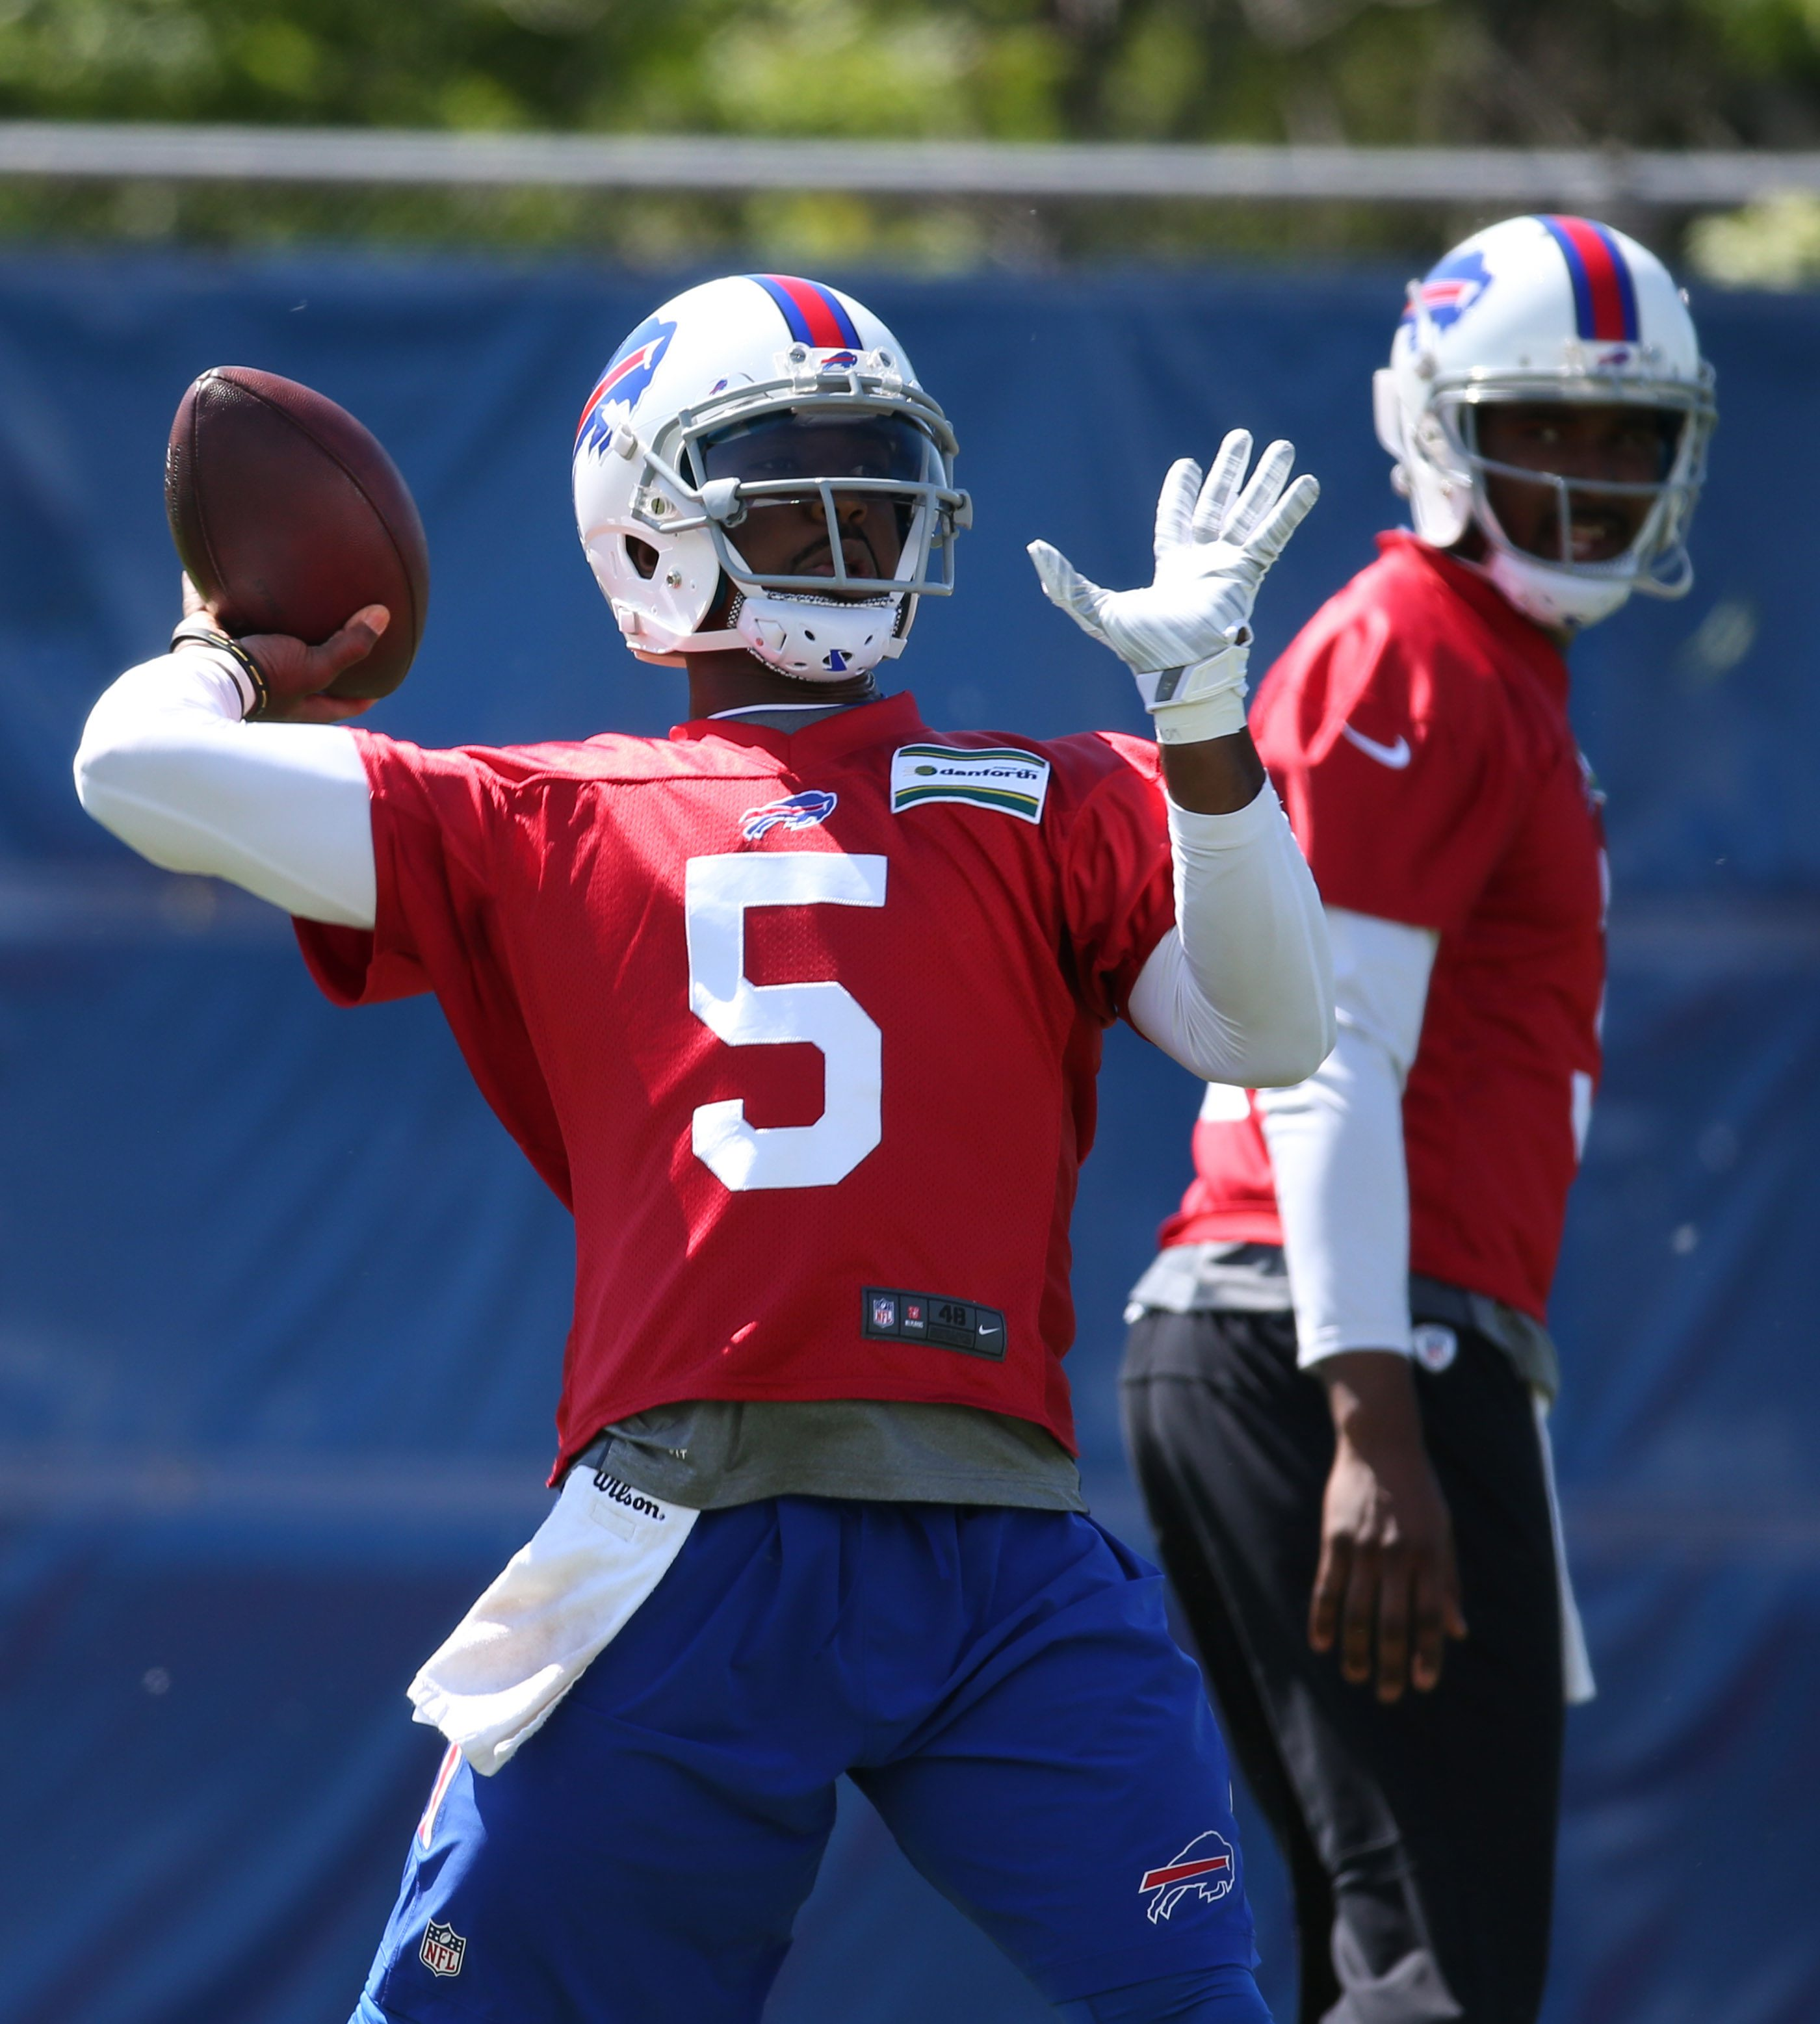 Tyrod Taylor throws a pass during the Bills OTA's in June. (James P. McCoy/Buffalo News)